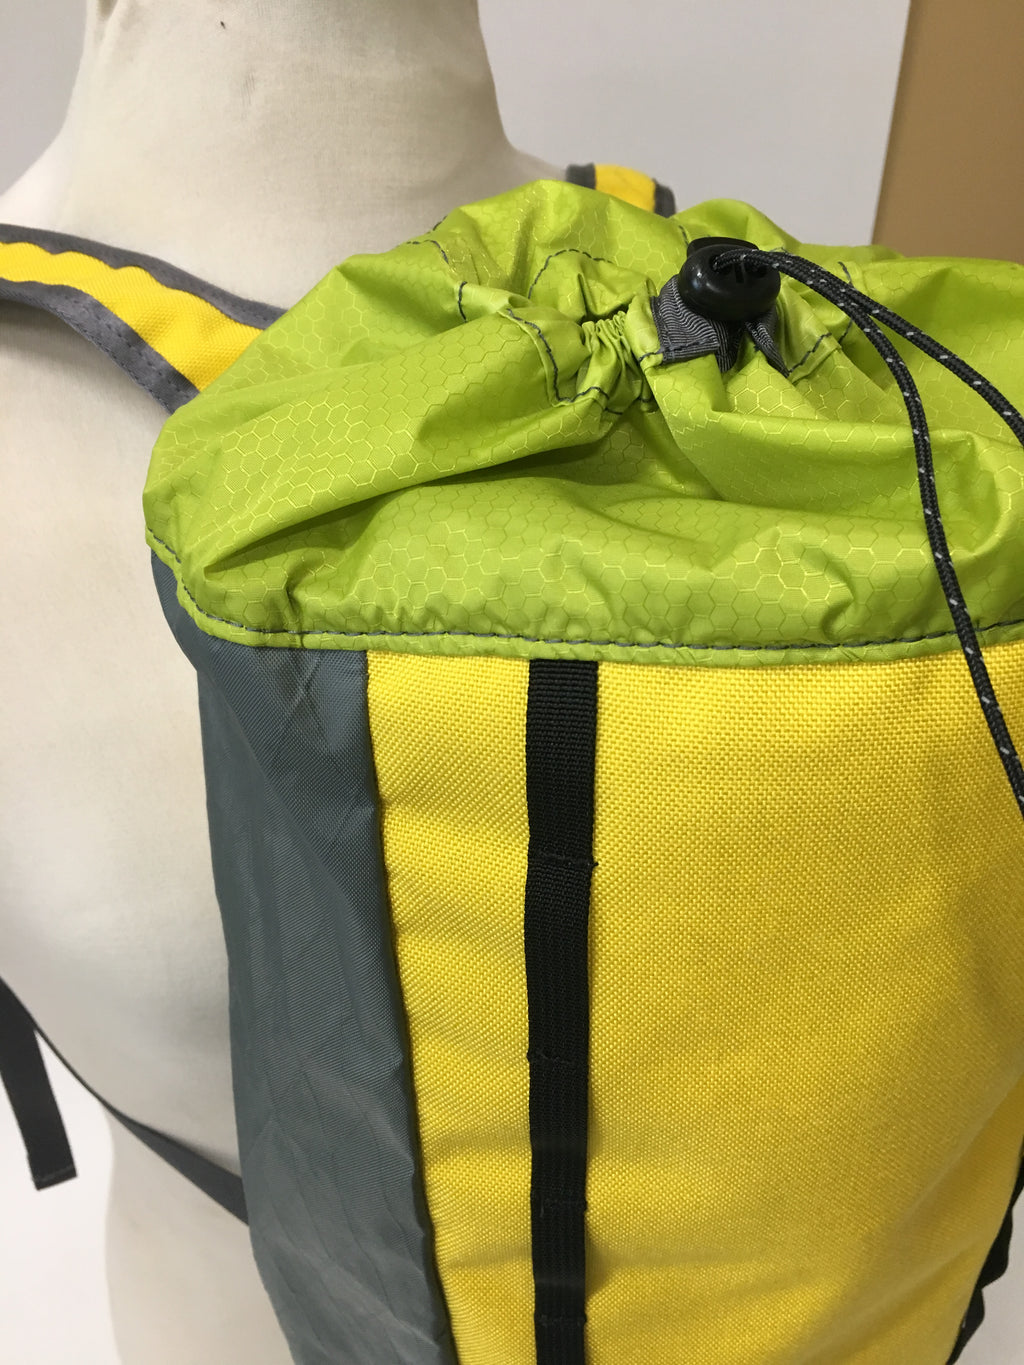 LUSB171 Ultralight Day Pack Yellow/Green/Grey